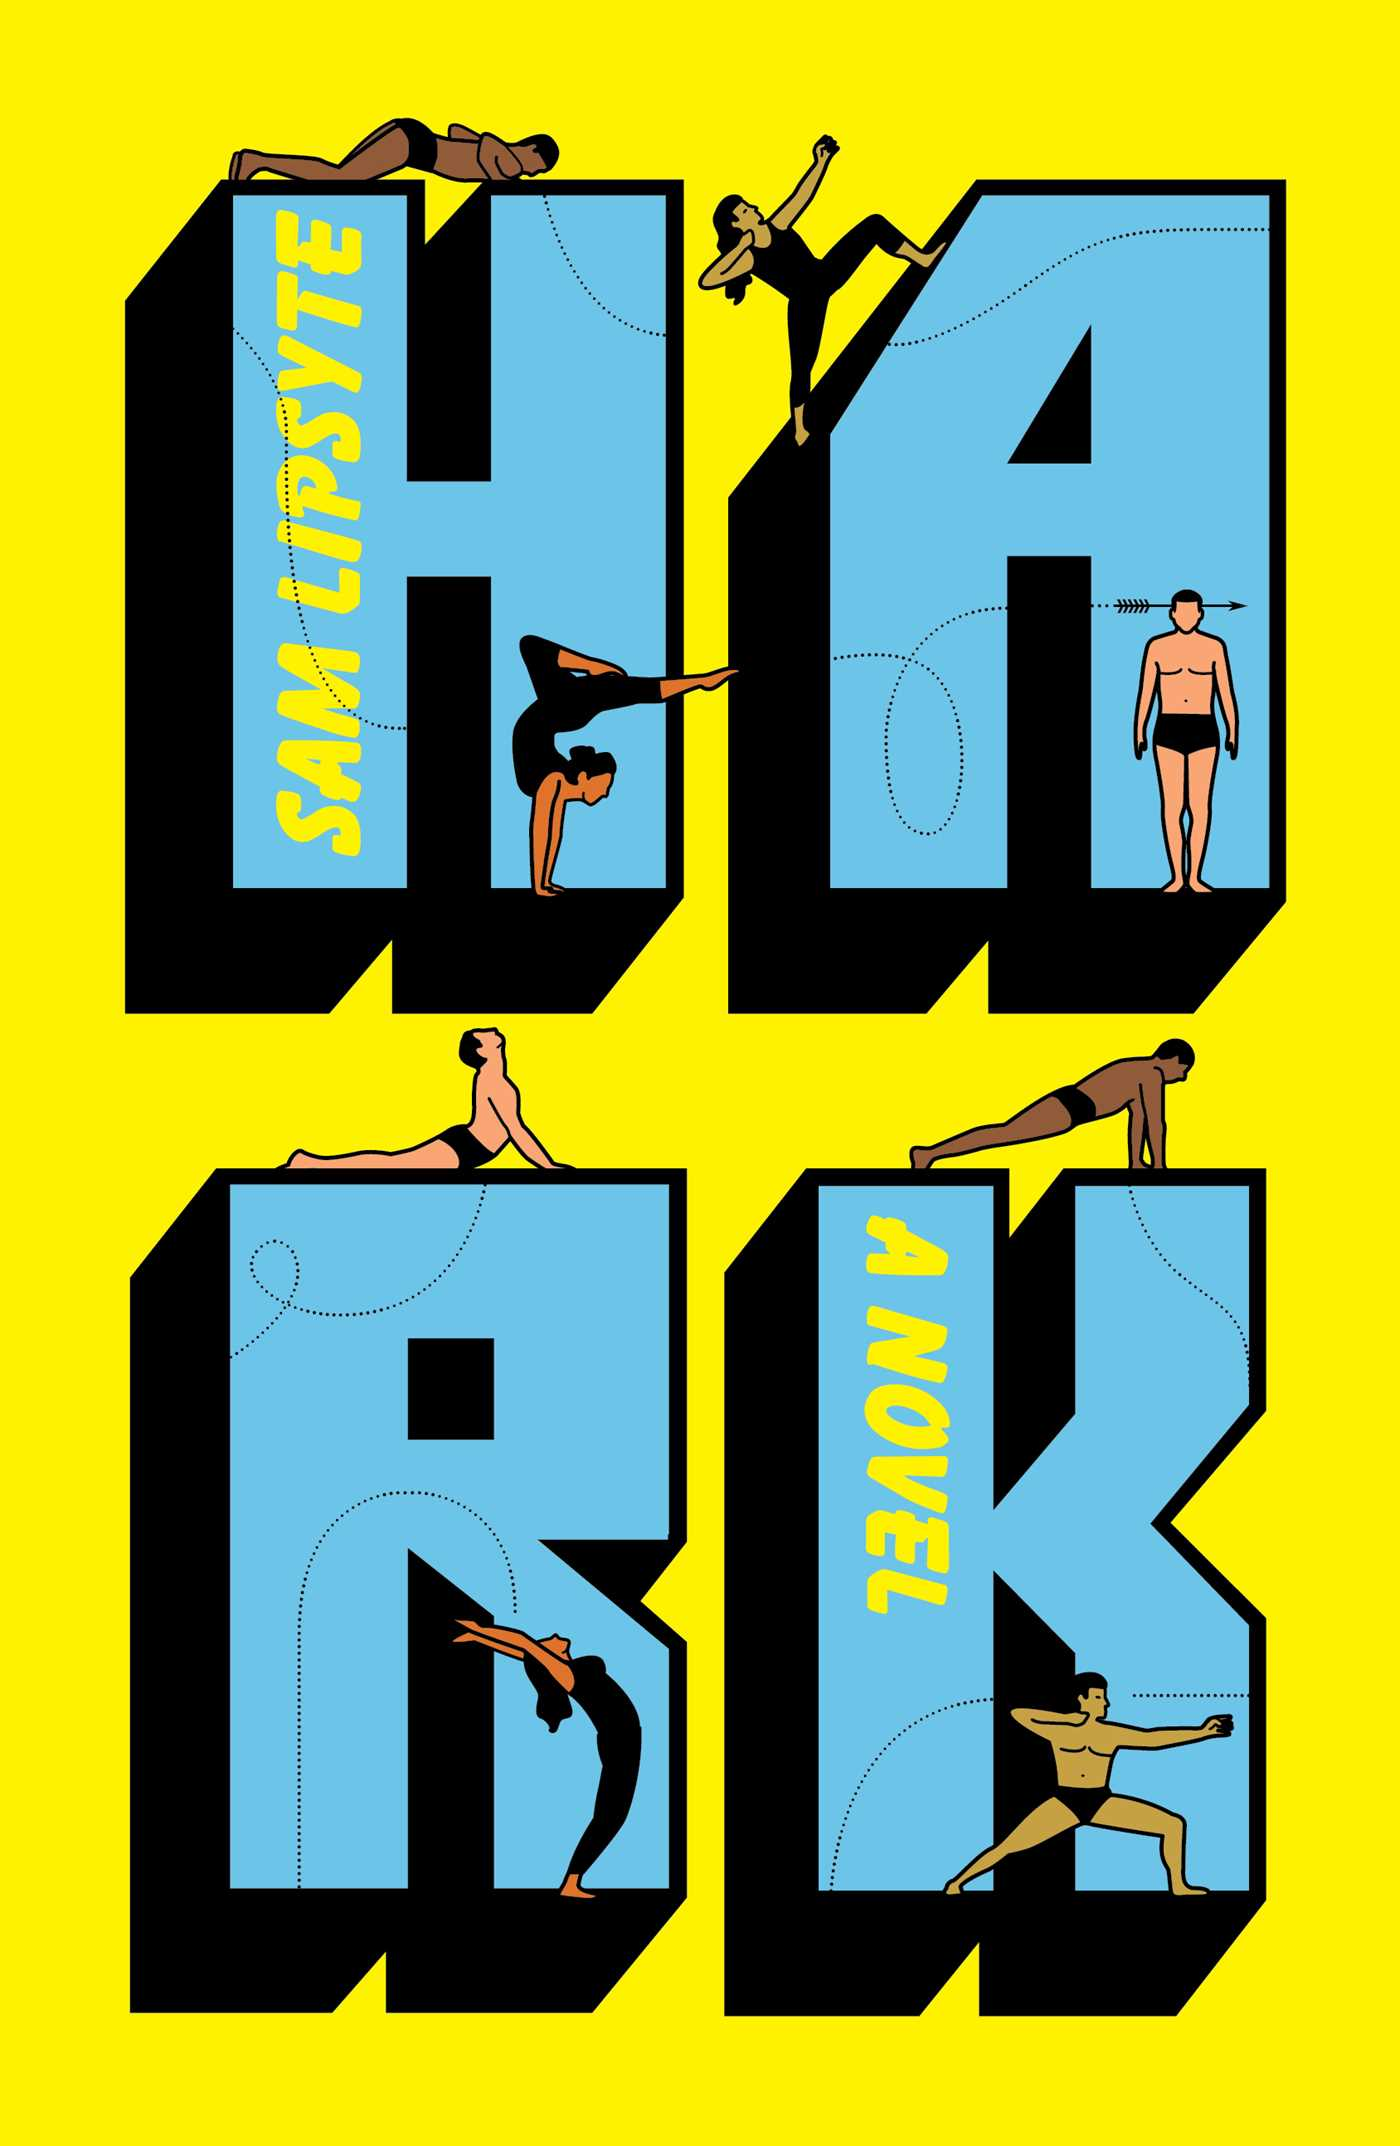 The cover of the book Hark